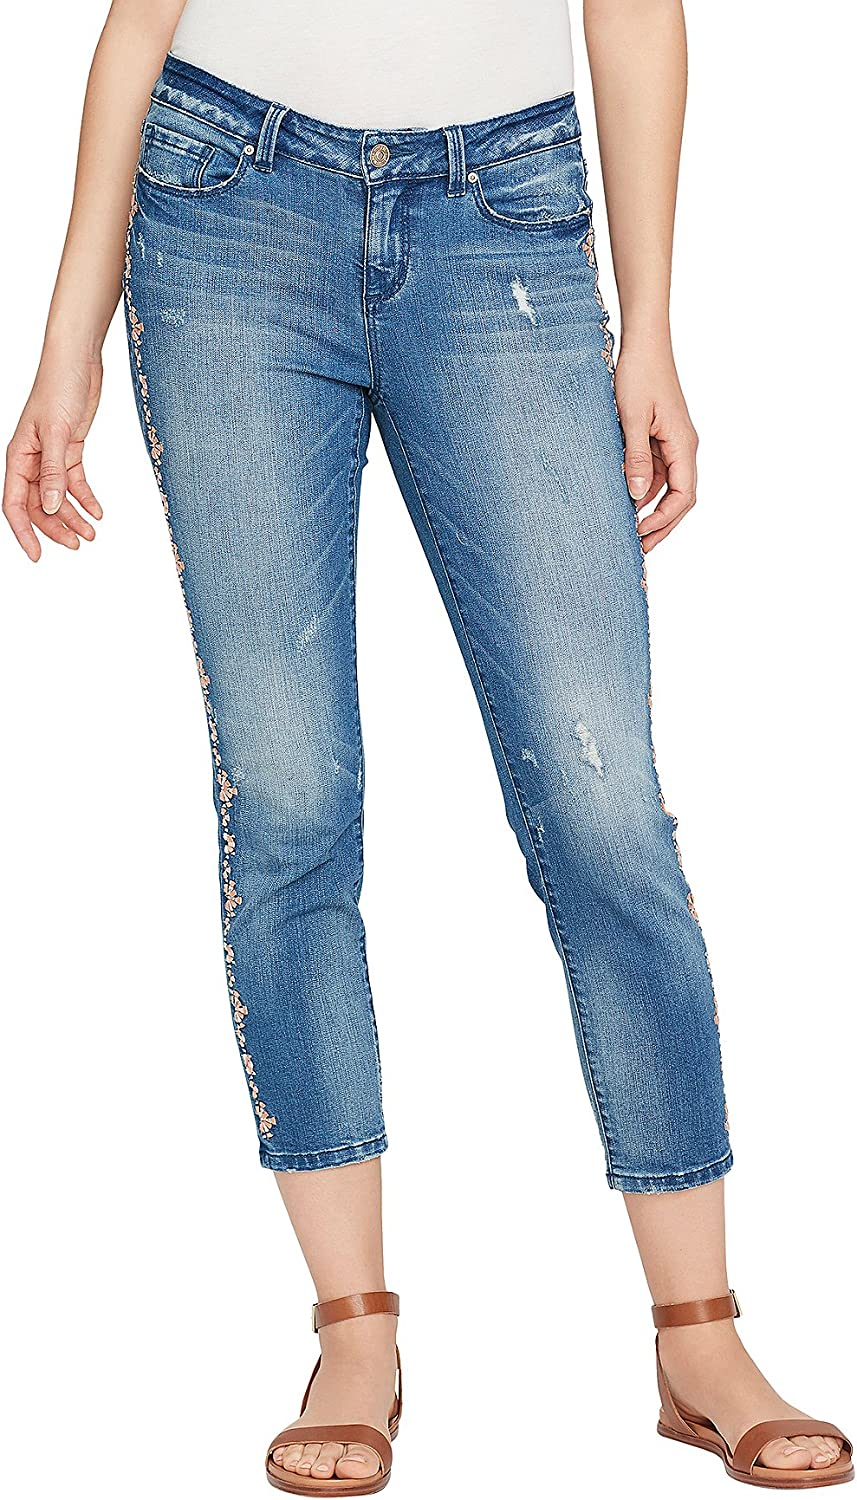 Vintage America bluees Floral Embroidery Detail Ankle Jeans